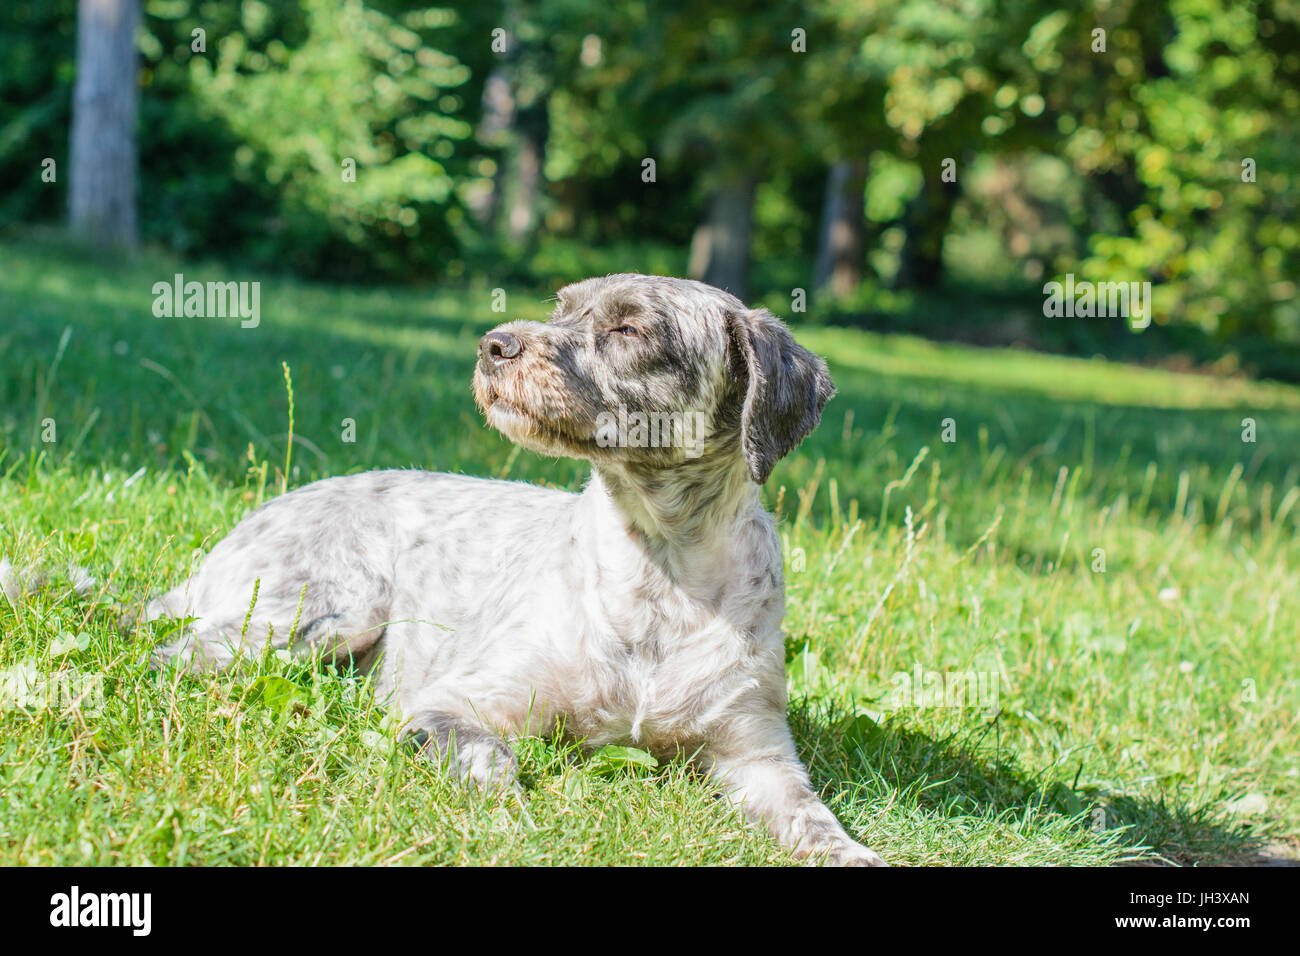 Dog lying on the grass in the park and looking aside with squeezed eyes shut. Selective focus. - Stock Image